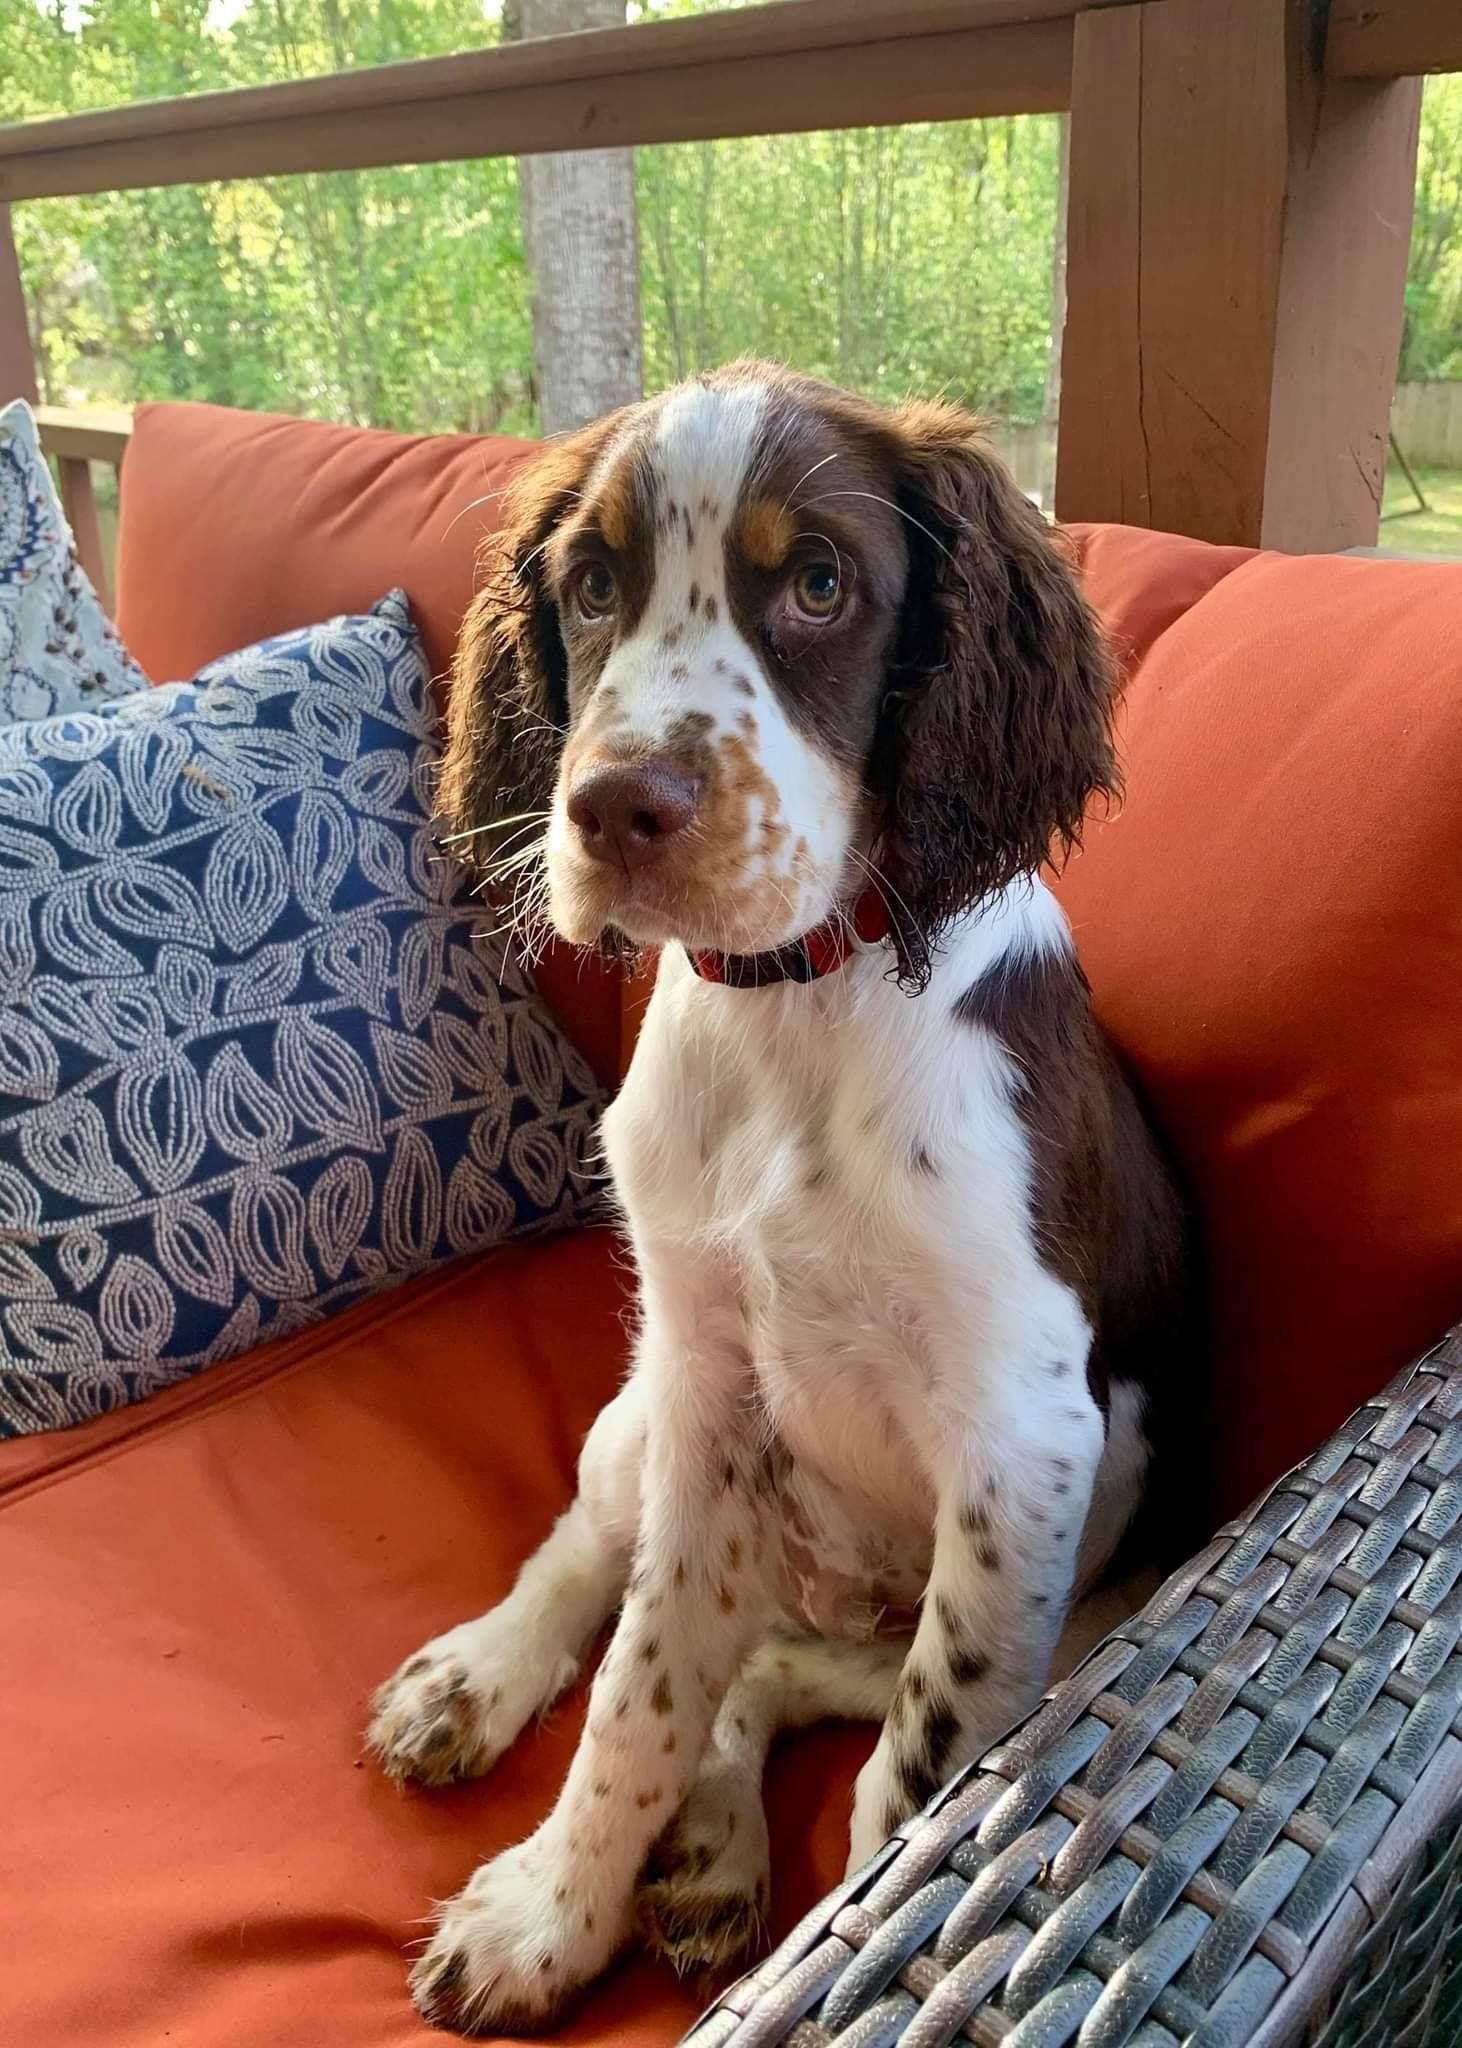 Pin By Richard Heise On English Springer Spaniels In 2020 Dog Love Welsh Springer Spaniel Animals Beautiful